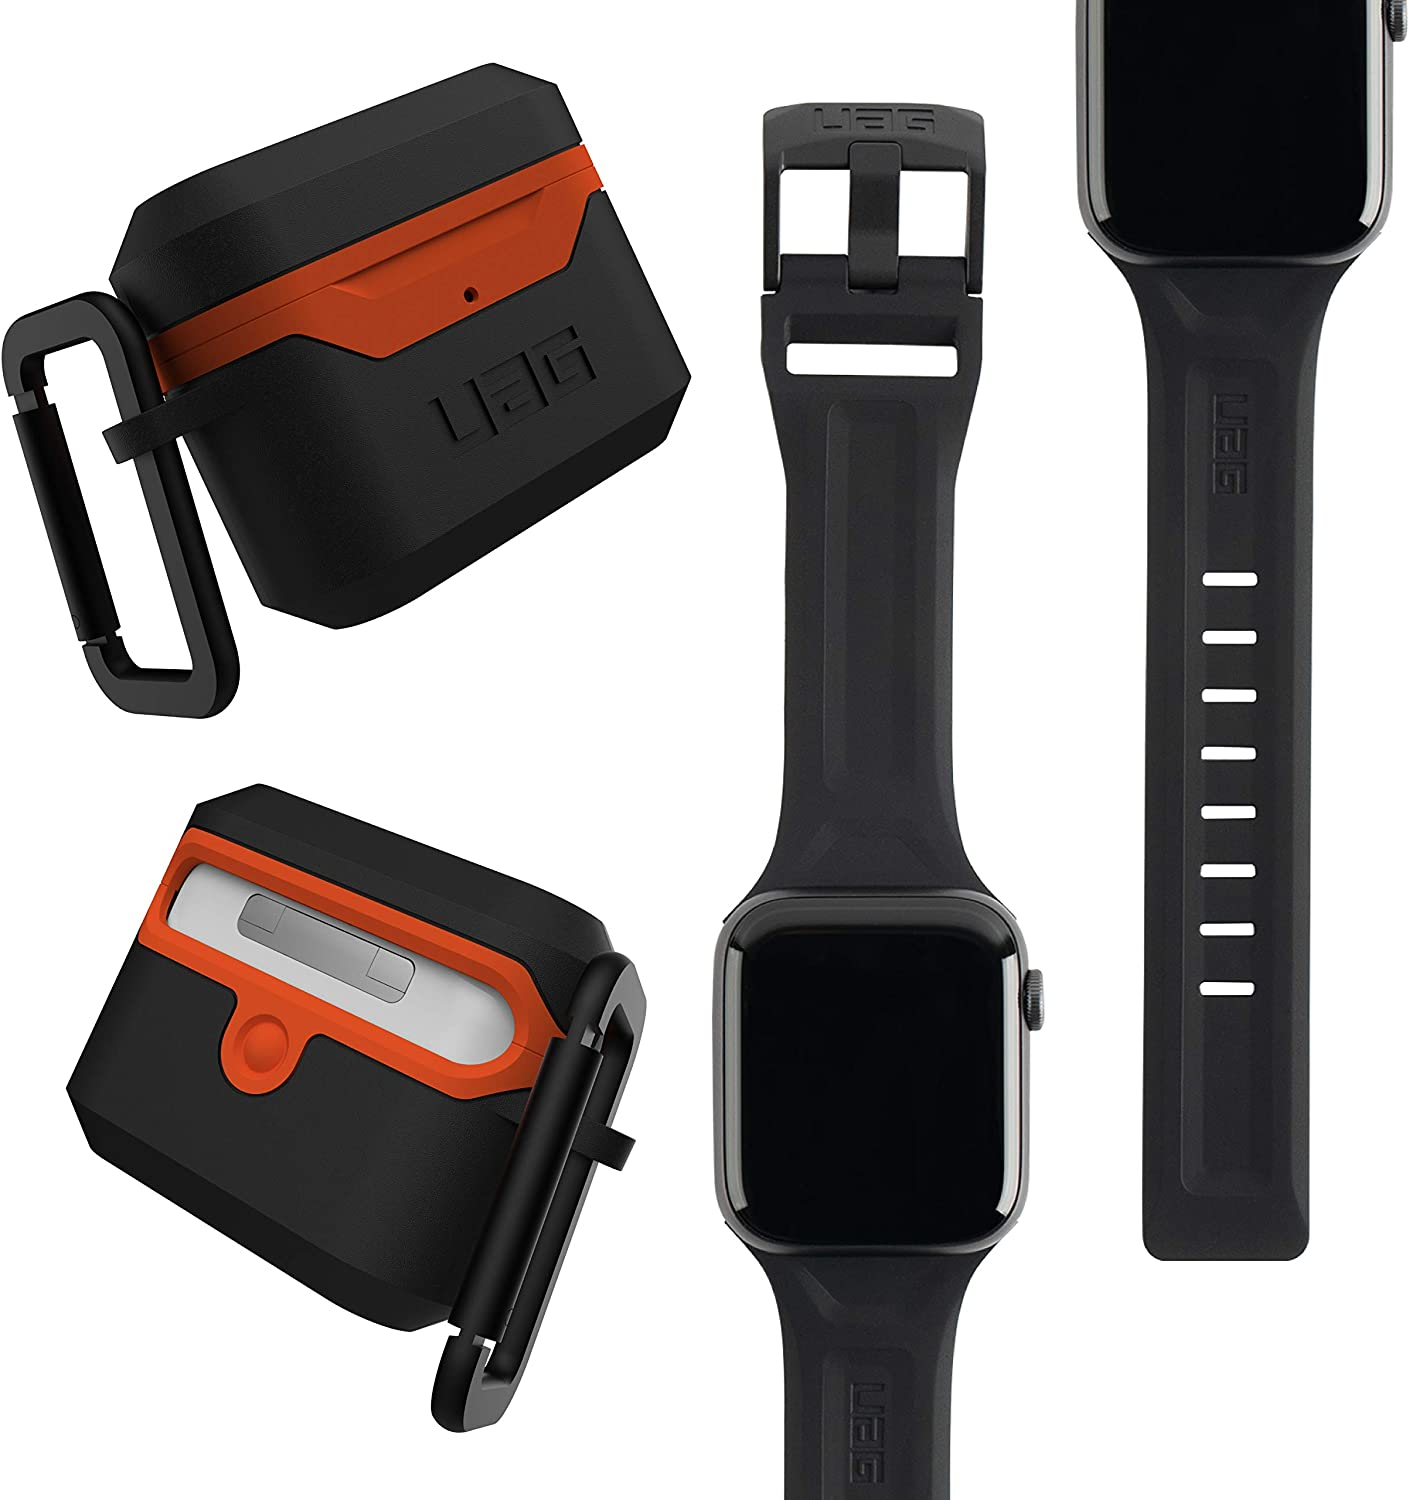 UAG Apple Watch Band 40mm 38mm, iWatch Series 6/5/4/Watch SE Replacement Strap, Scout Black + AirPods Pro Case with Detachable Carabiner, Black/Orange